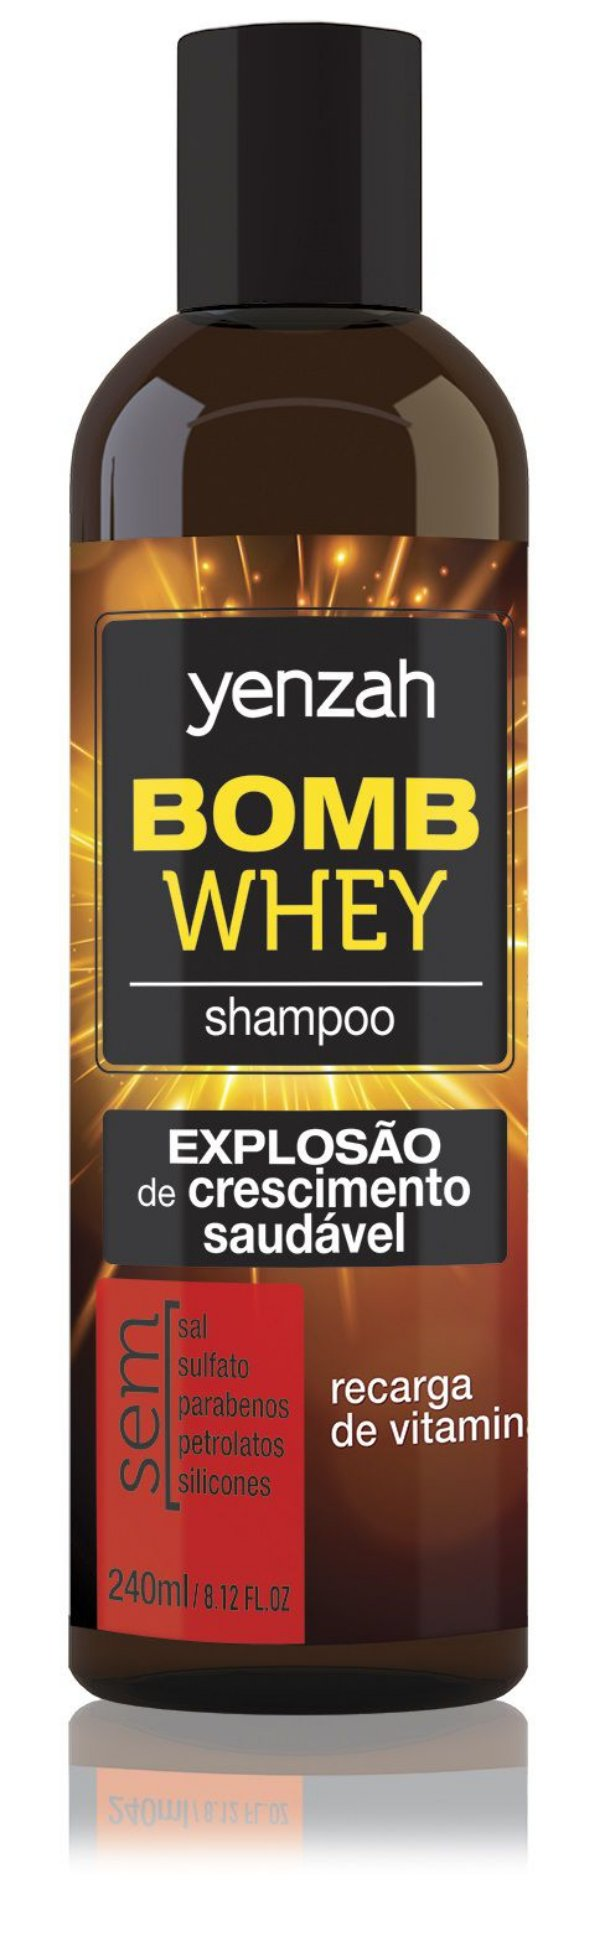 Yenzah Bomb Cream Whey - Shampoo - 240ml